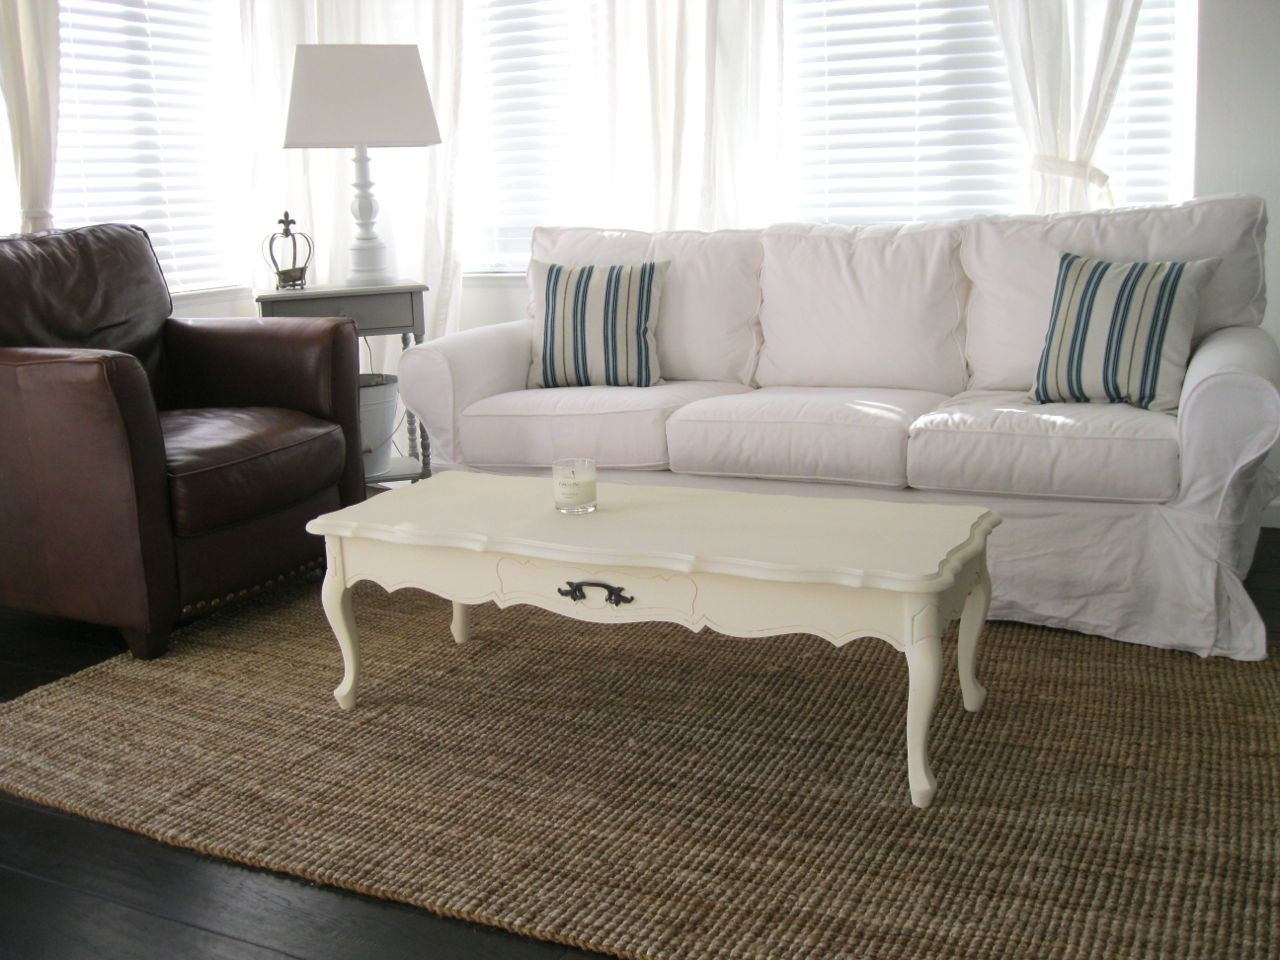 White Slipcovered Sofa With Long Table And Rug